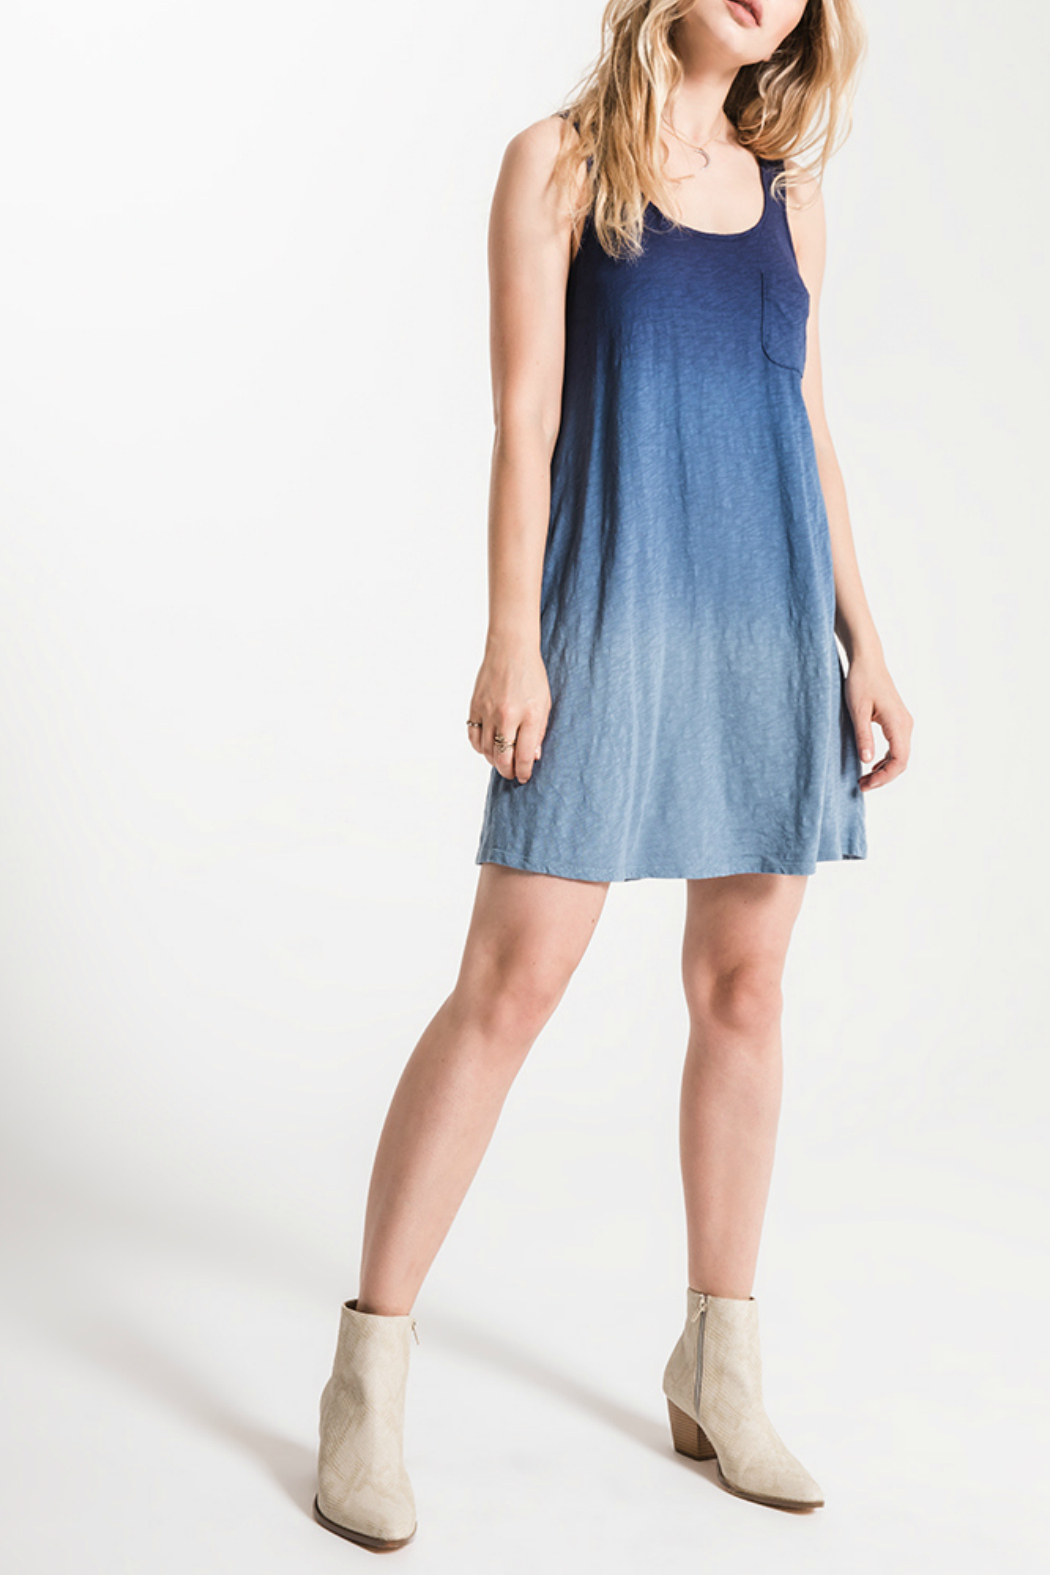 White Crow Kacey Ombre Swing Dress - Main Image